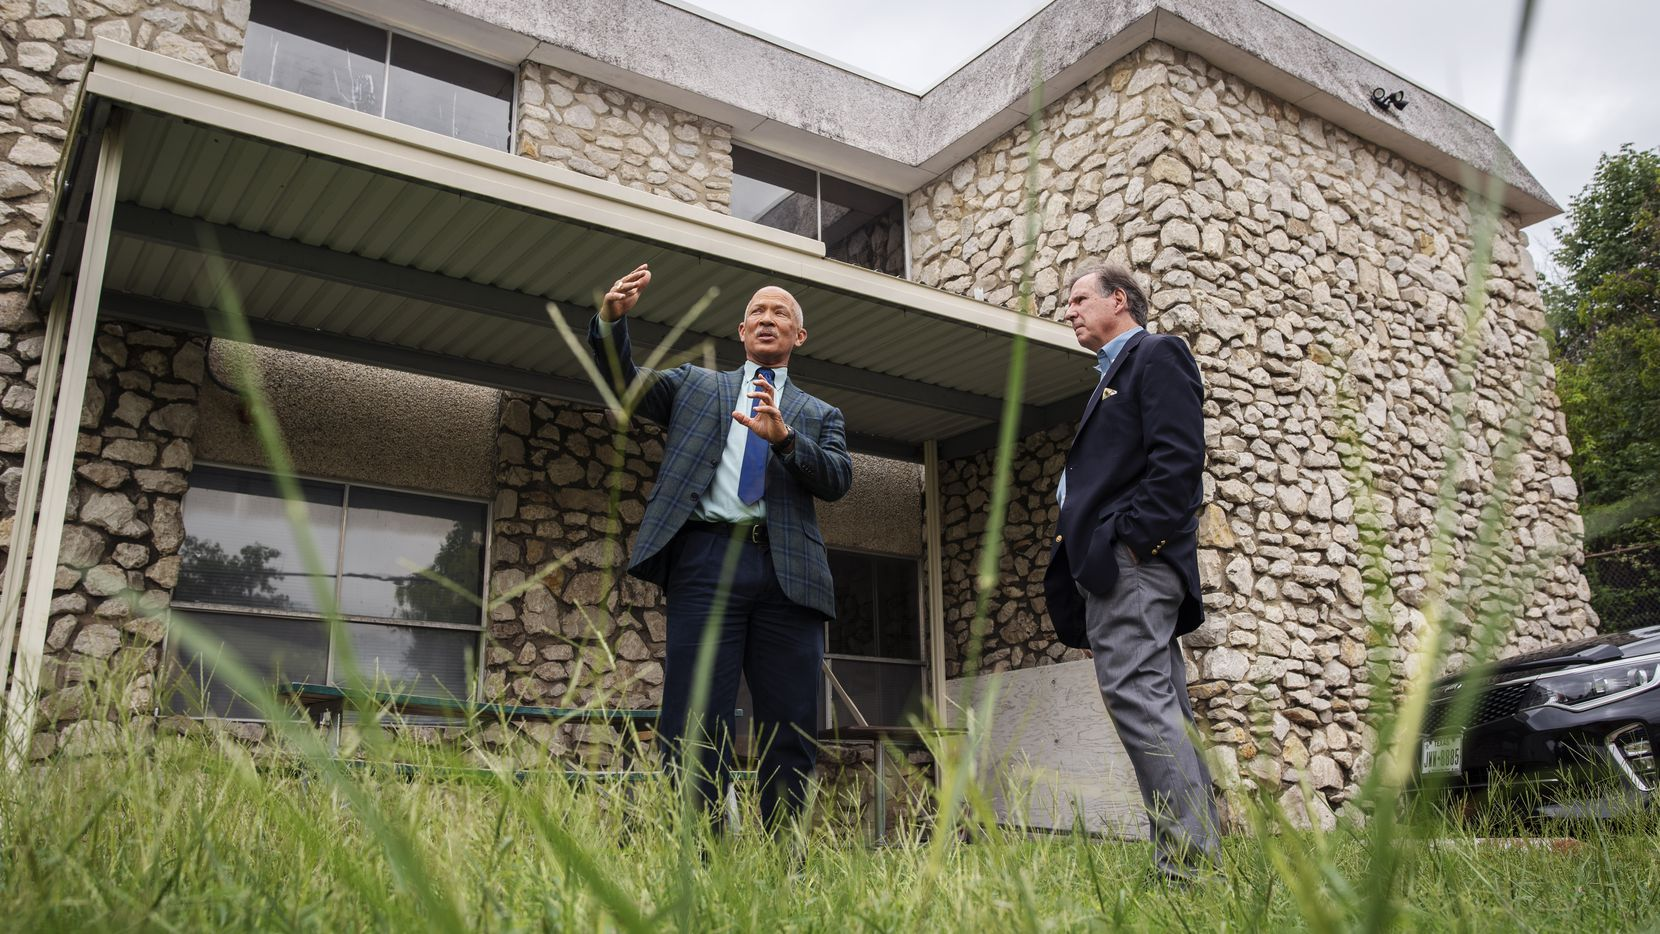 Dallas County District Attorney John Creuzot, left, and Homeward Bound executive director Doug Denton near what will they hope will become the entrance to a new deflection center at Homeward Bound. County commissioners are scheduled to vote Tuesday on necessary renovation funds for the center as part of their 2021 budget decisions.